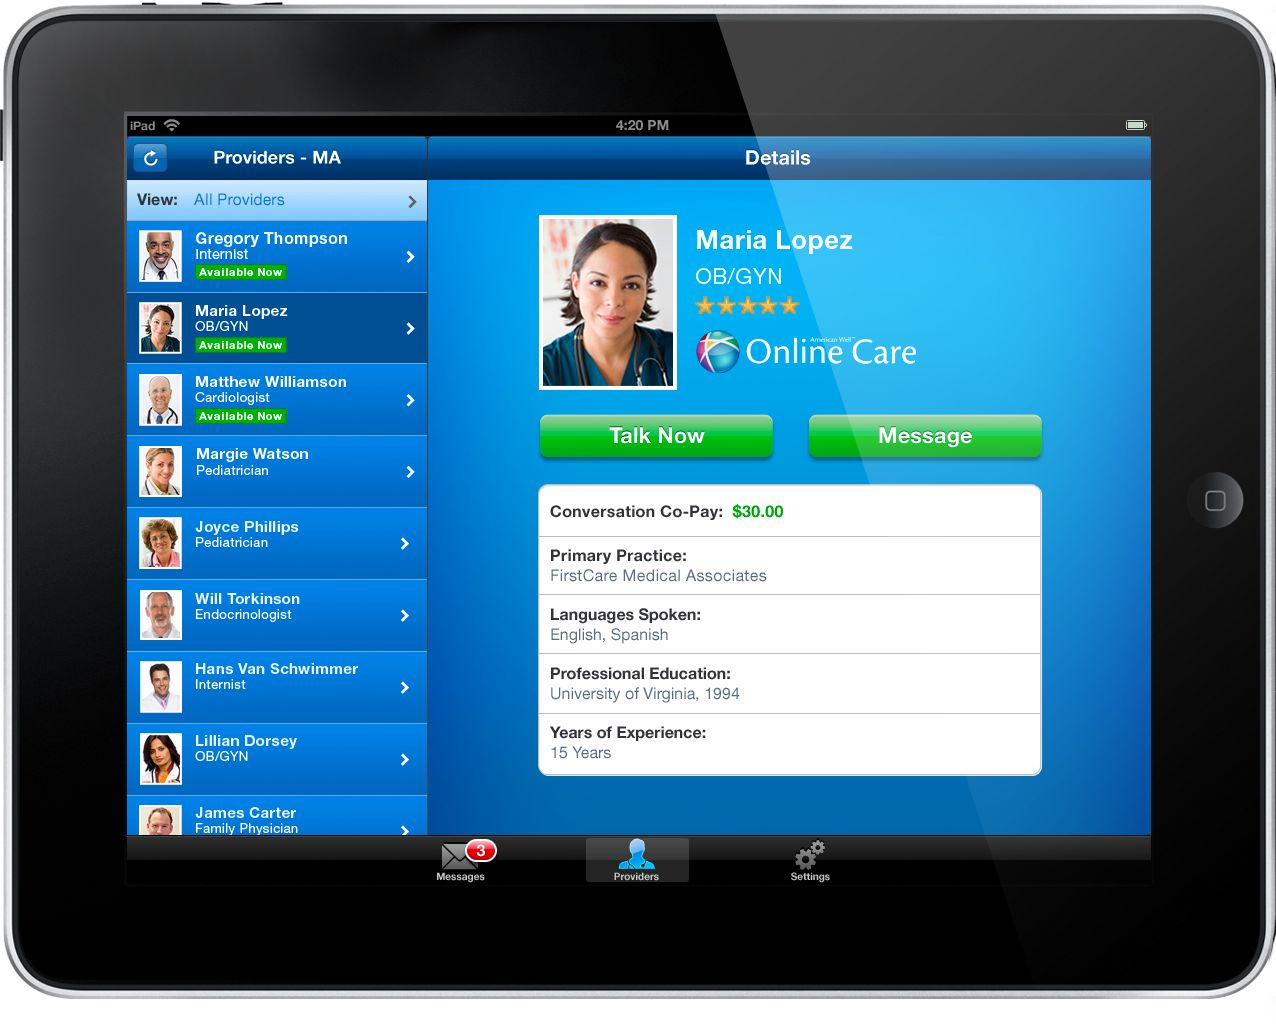 American Well Online Care Mobile App for Consumers (iPad)